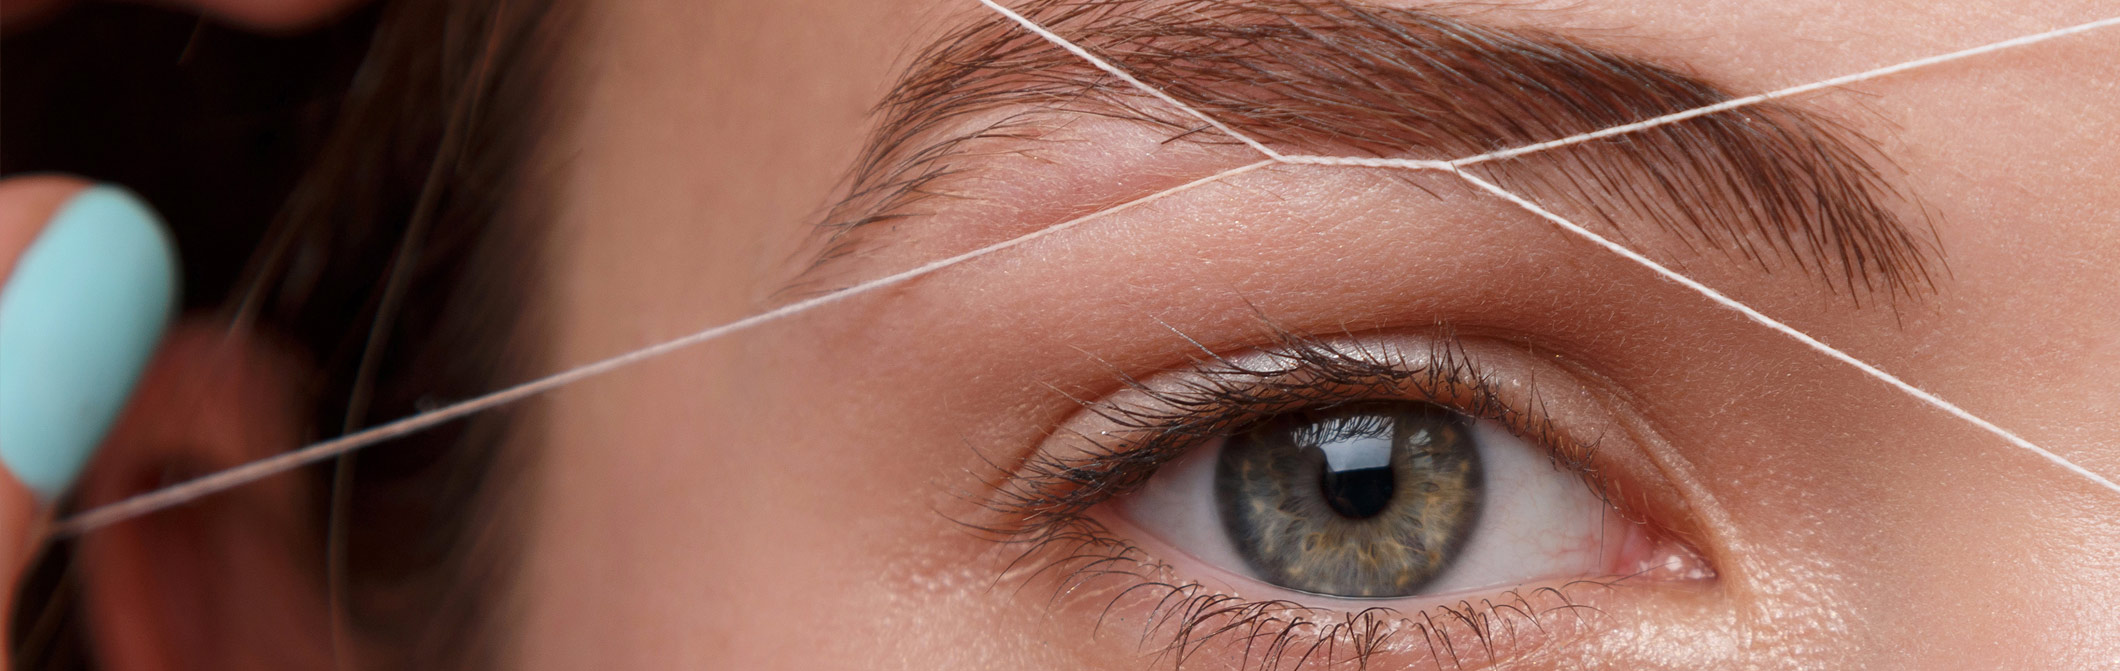 Eyebrow Threading and More   SIMPLE, FAST & ALL-NATURAL   View our services